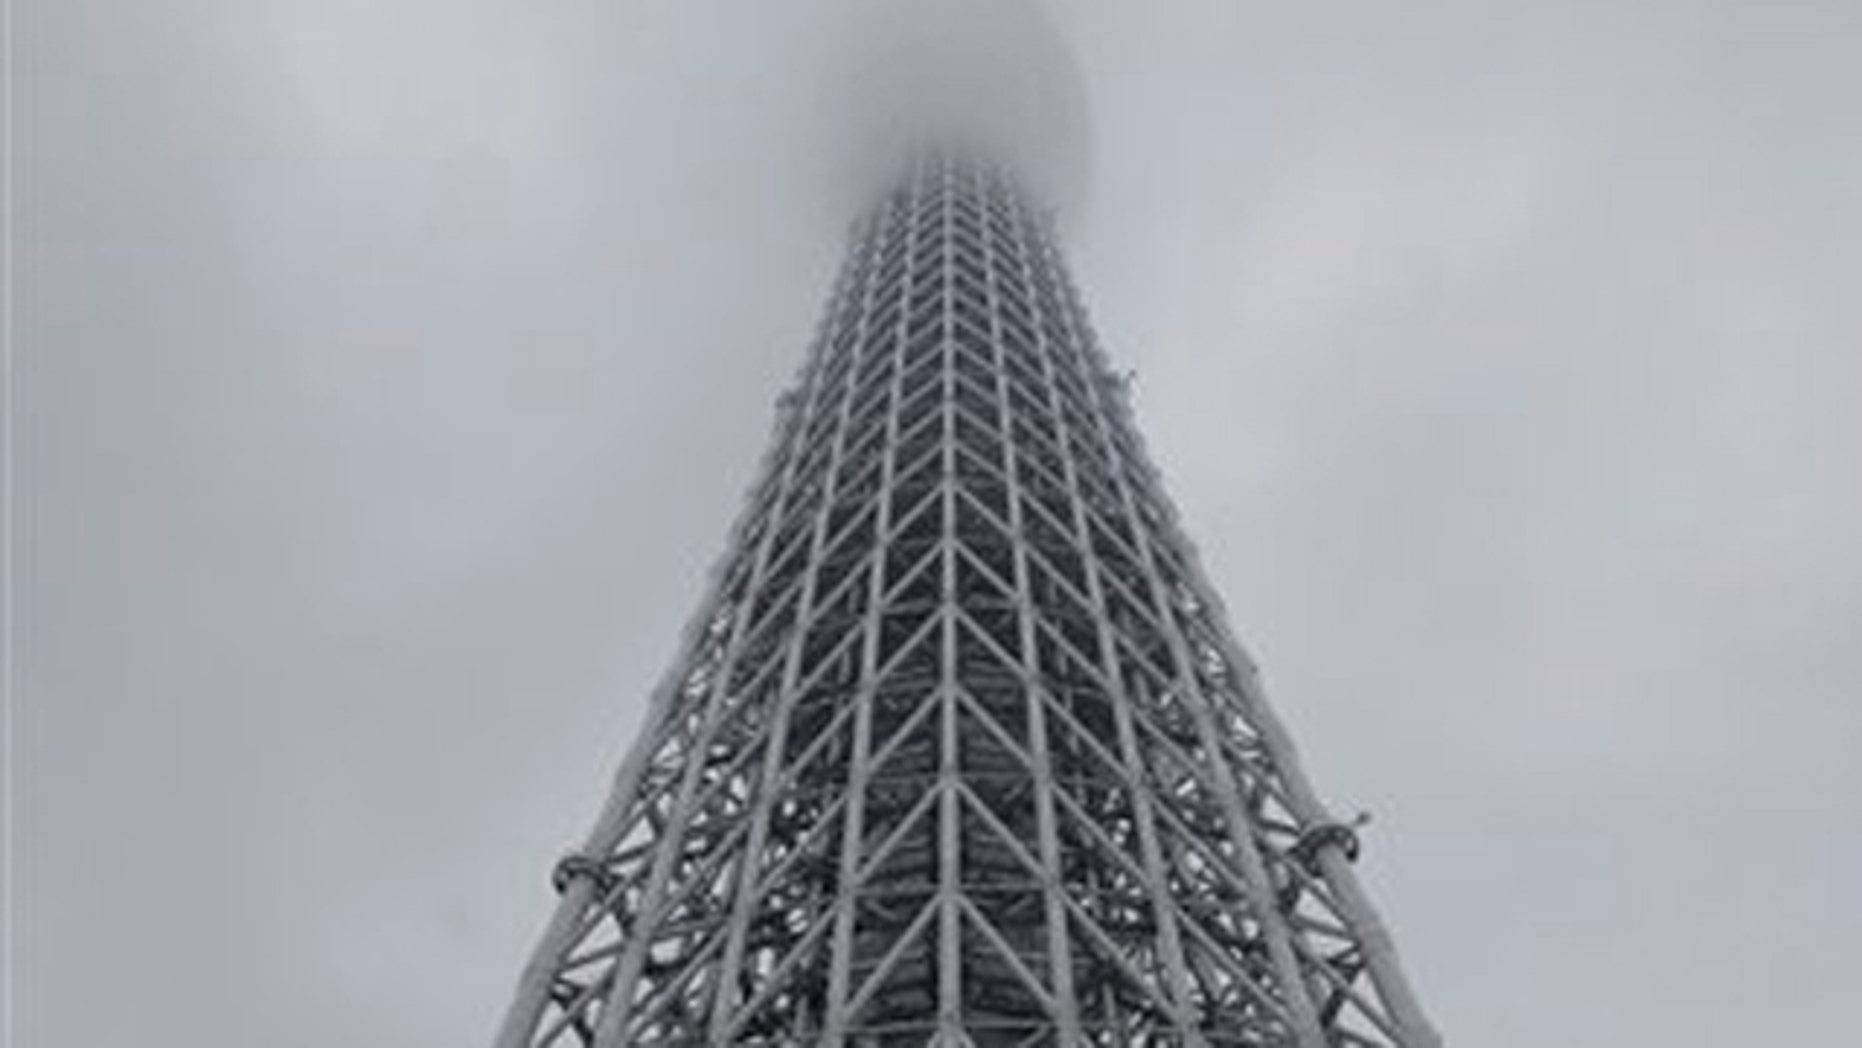 May 22, 2012: Visitors wait in front of the entrance of the Tokyo Skytree in Tokyo.